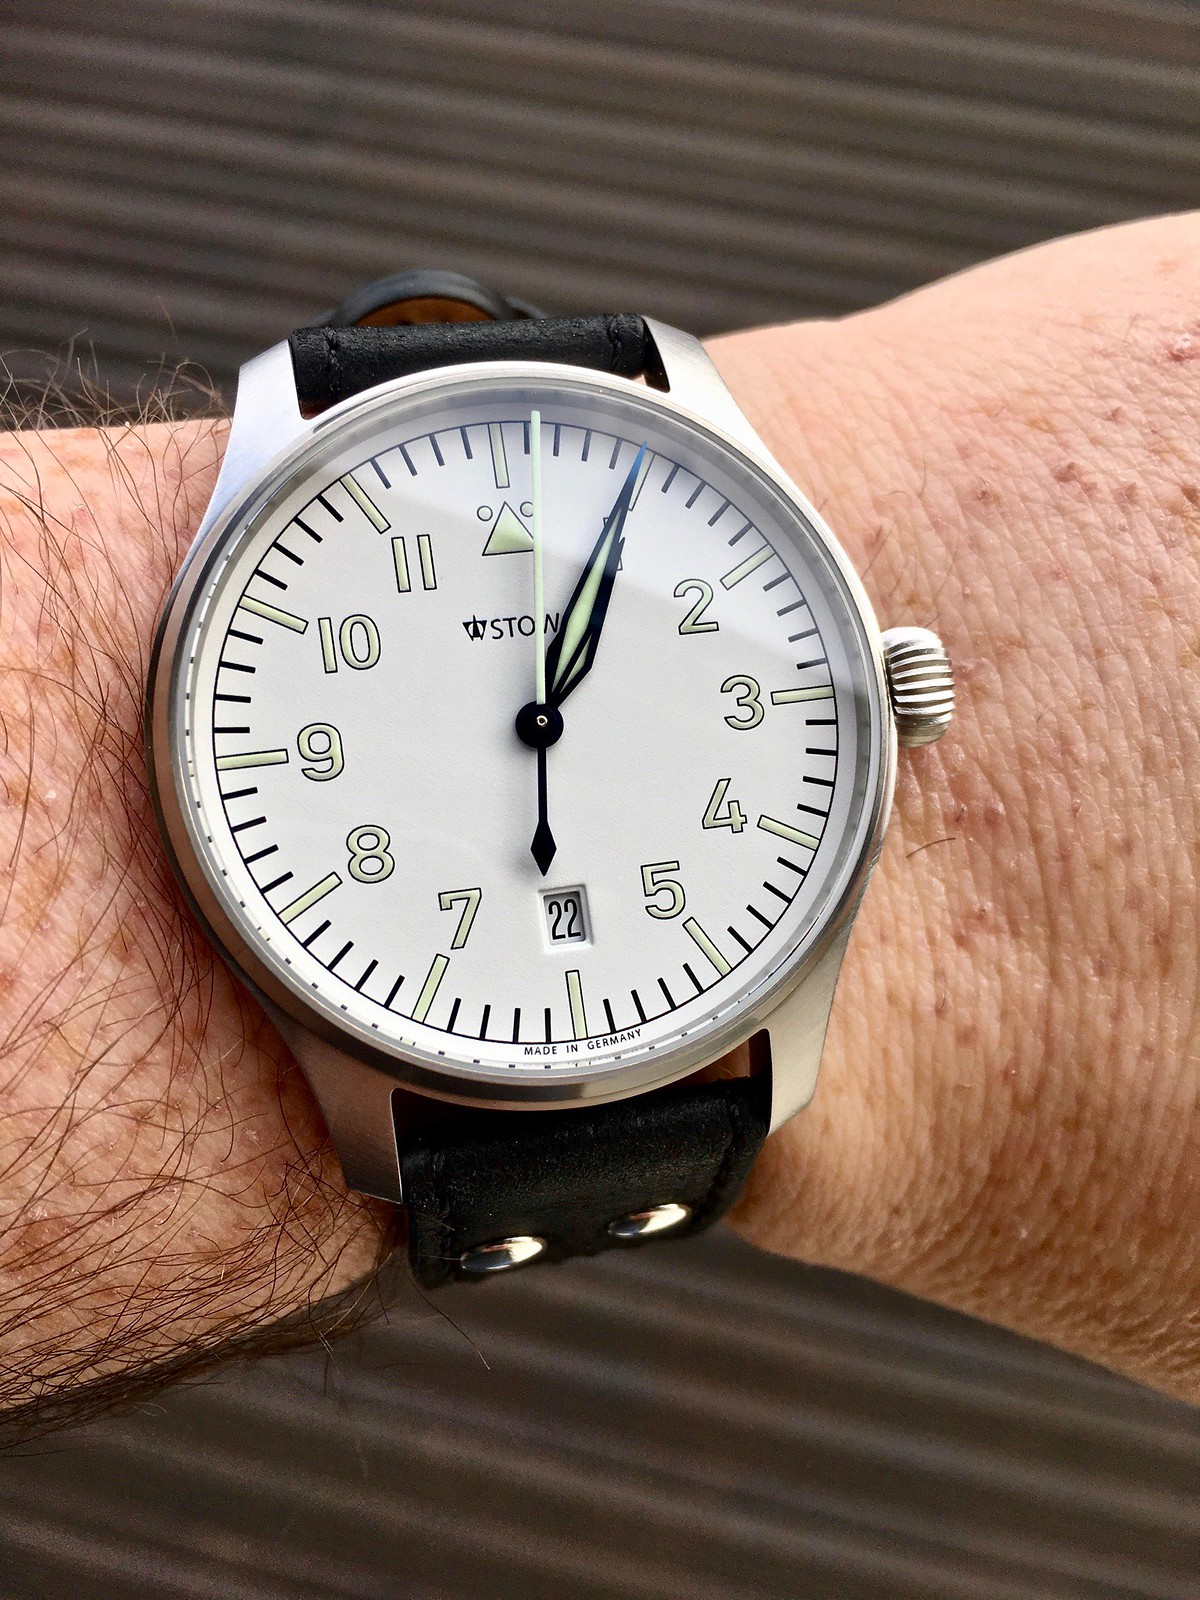 stowa - STOWA Flieger Club [The Official Subject] - Vol IV - Page 24 31896533137_004fdab852_h